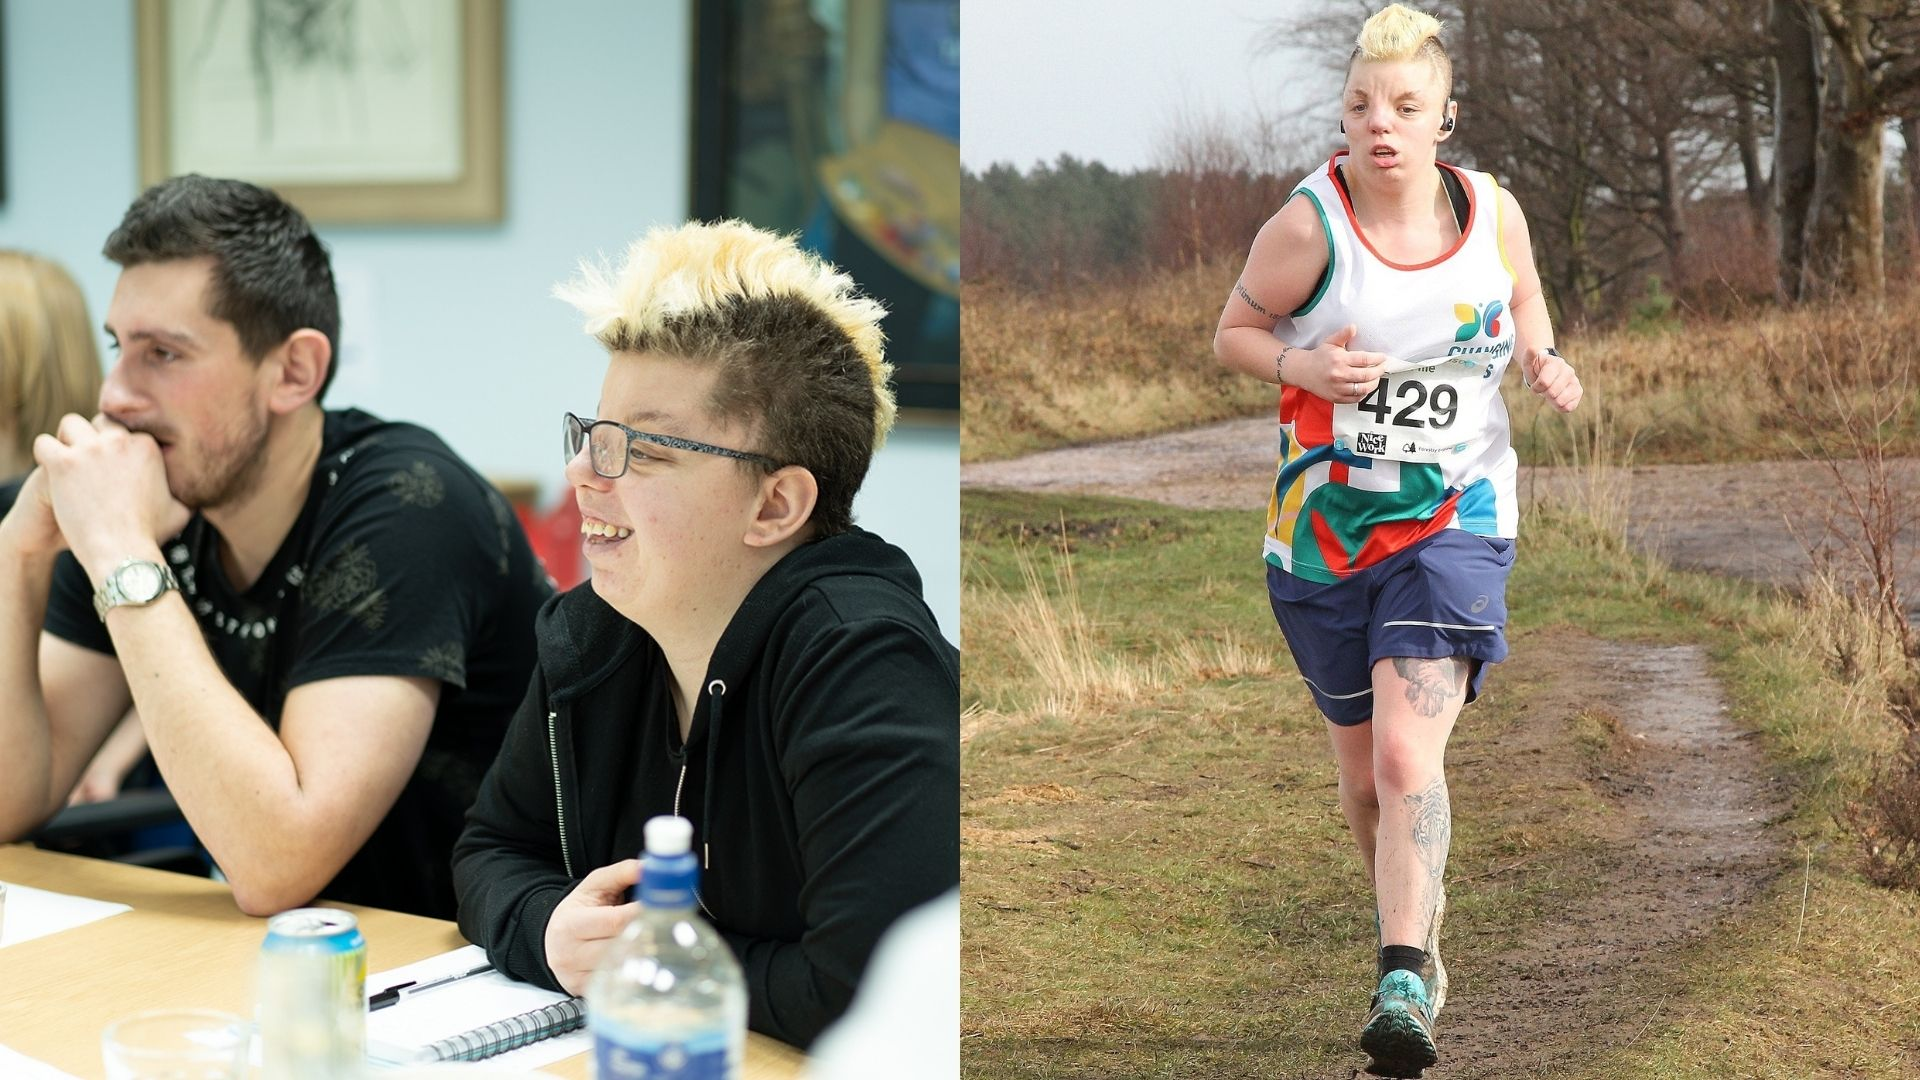 Left: Ella, a Changing Faces campaigner, wearing a black jumper and glasses and sitting at a table next to a fellow campaigner. Right: Ella, wearing a Changing Faces running singlet, and running along a muddy path outdoors.